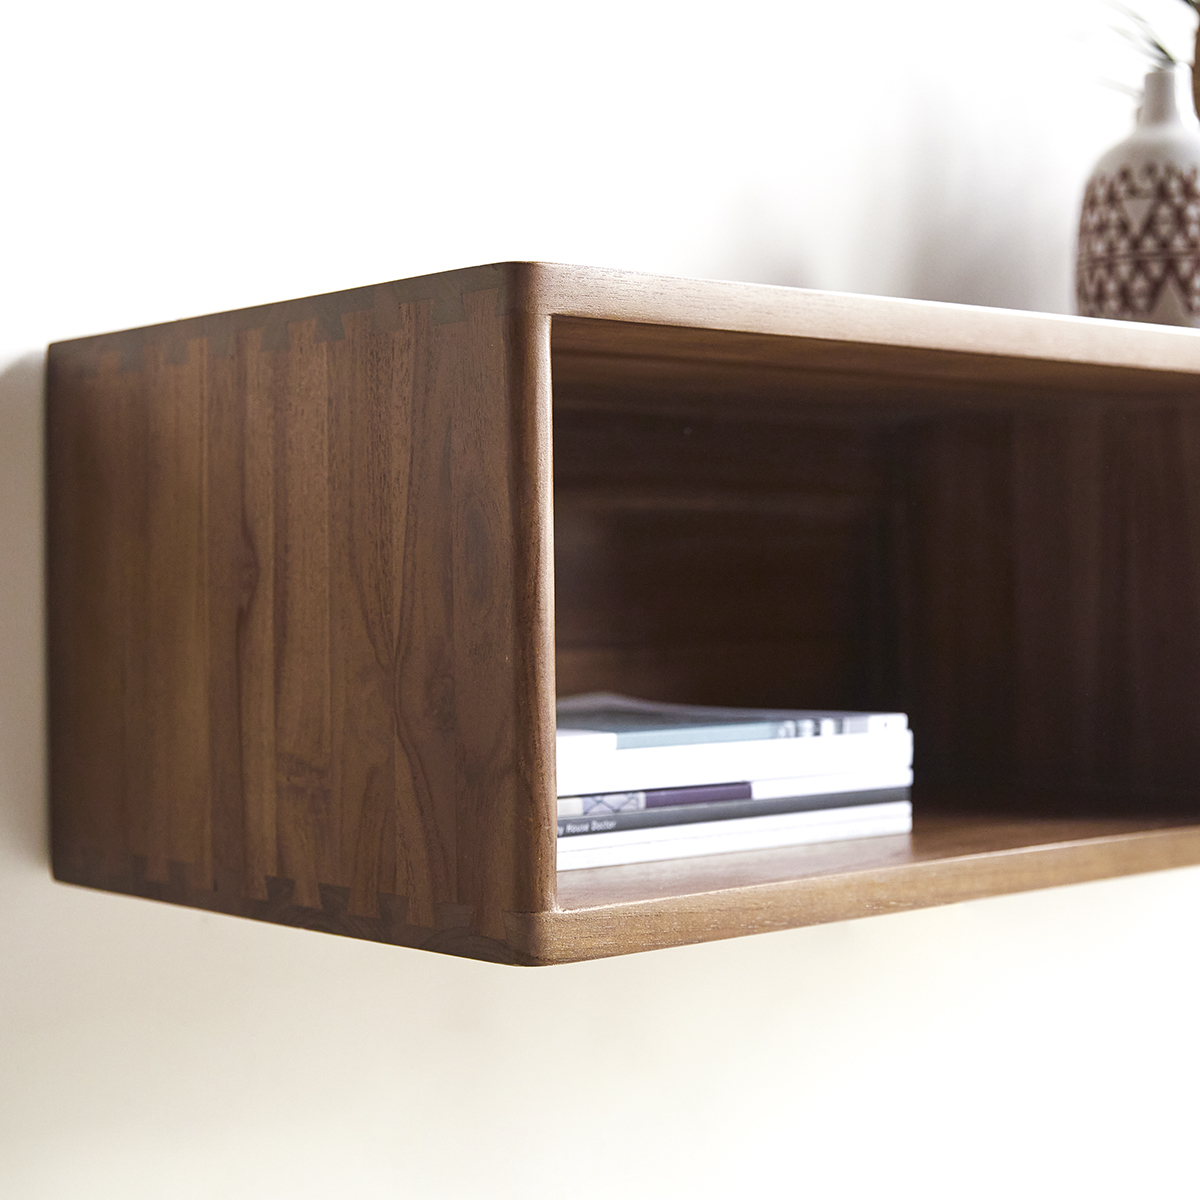 One Drawer Teak Console Table 110 Cm Wall Mounted Unit For The Living Room